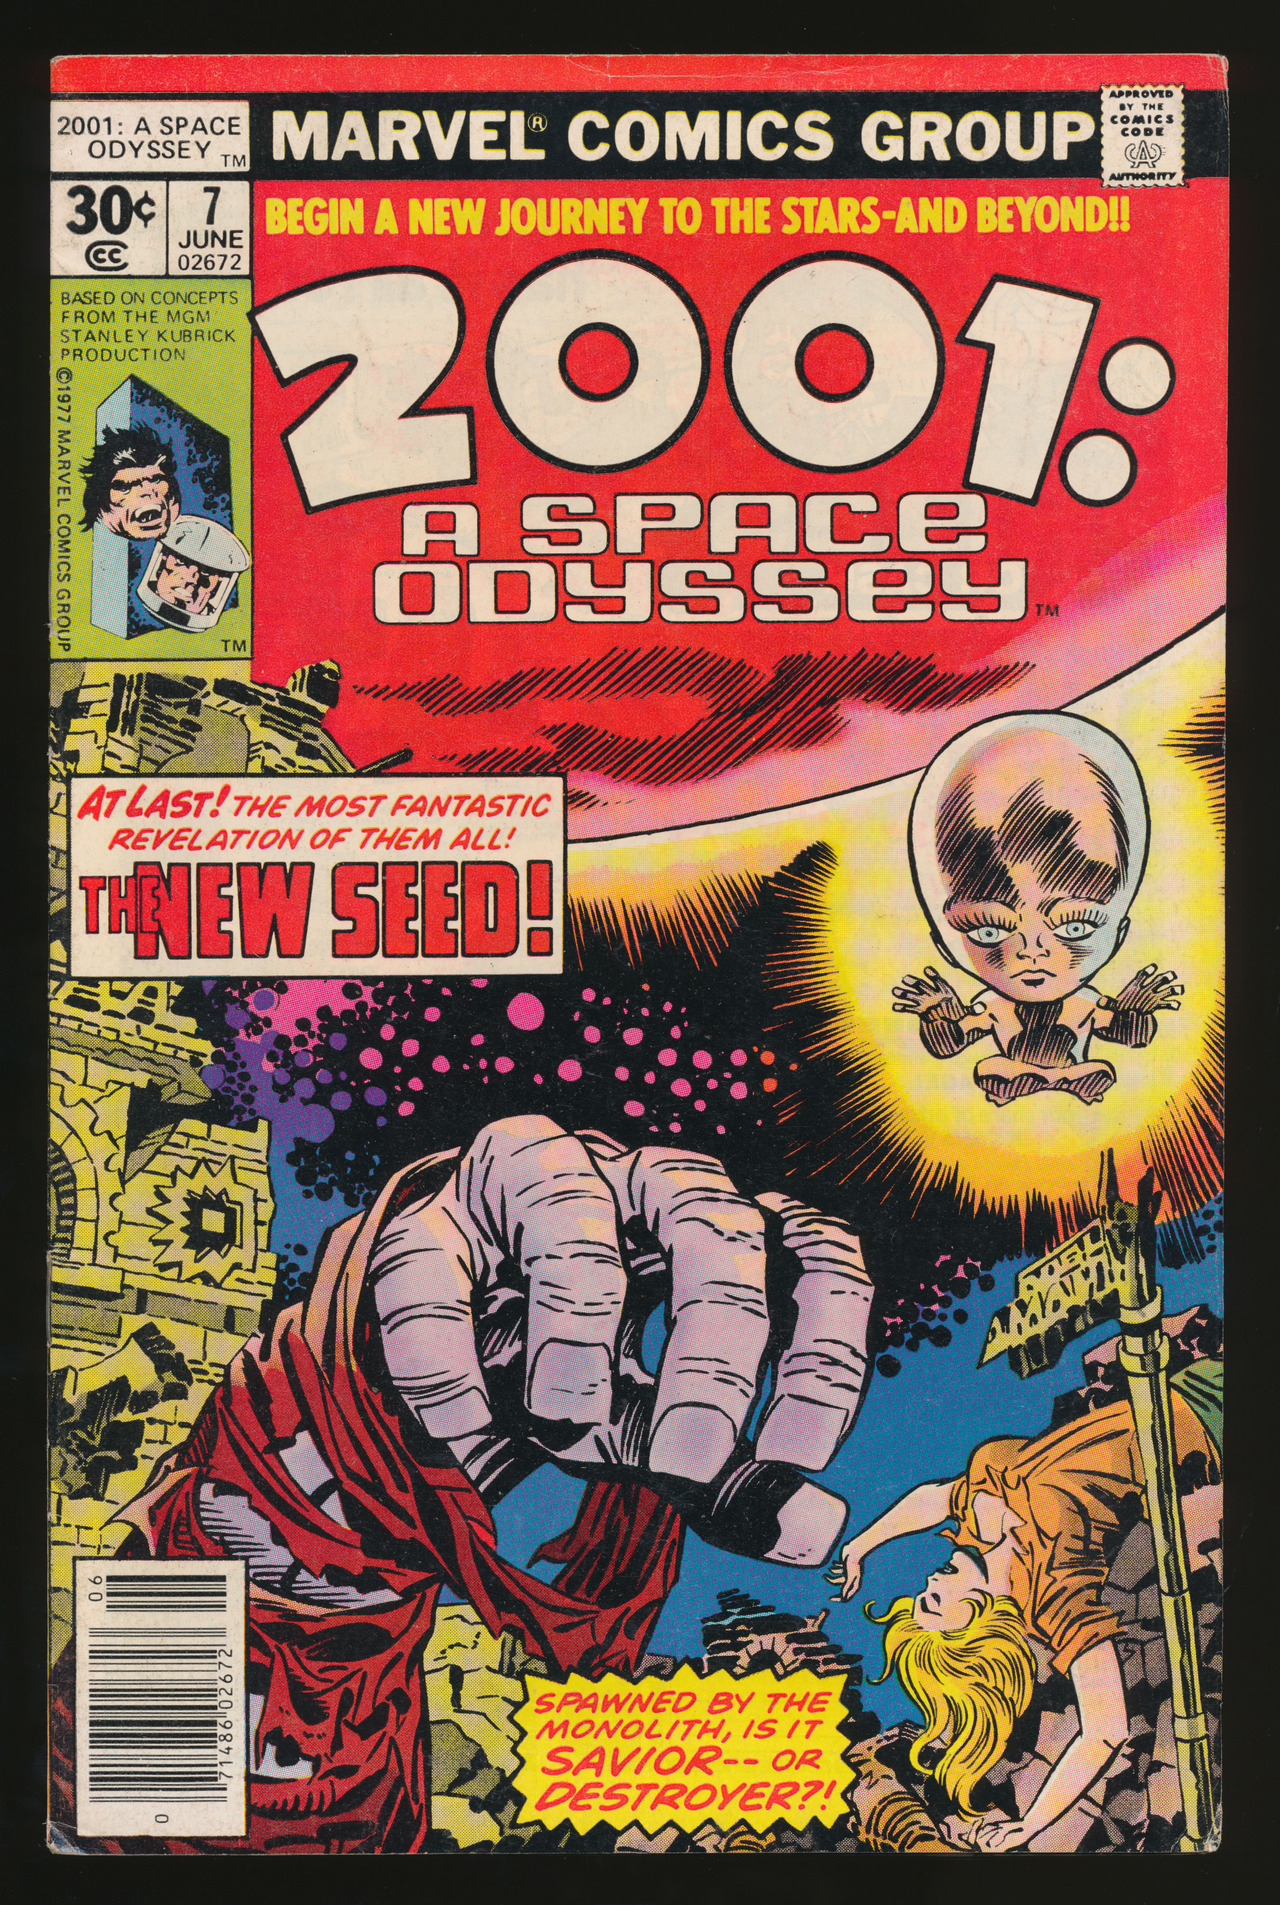 2001: A Space Odyssey #7(Jun. 1977)